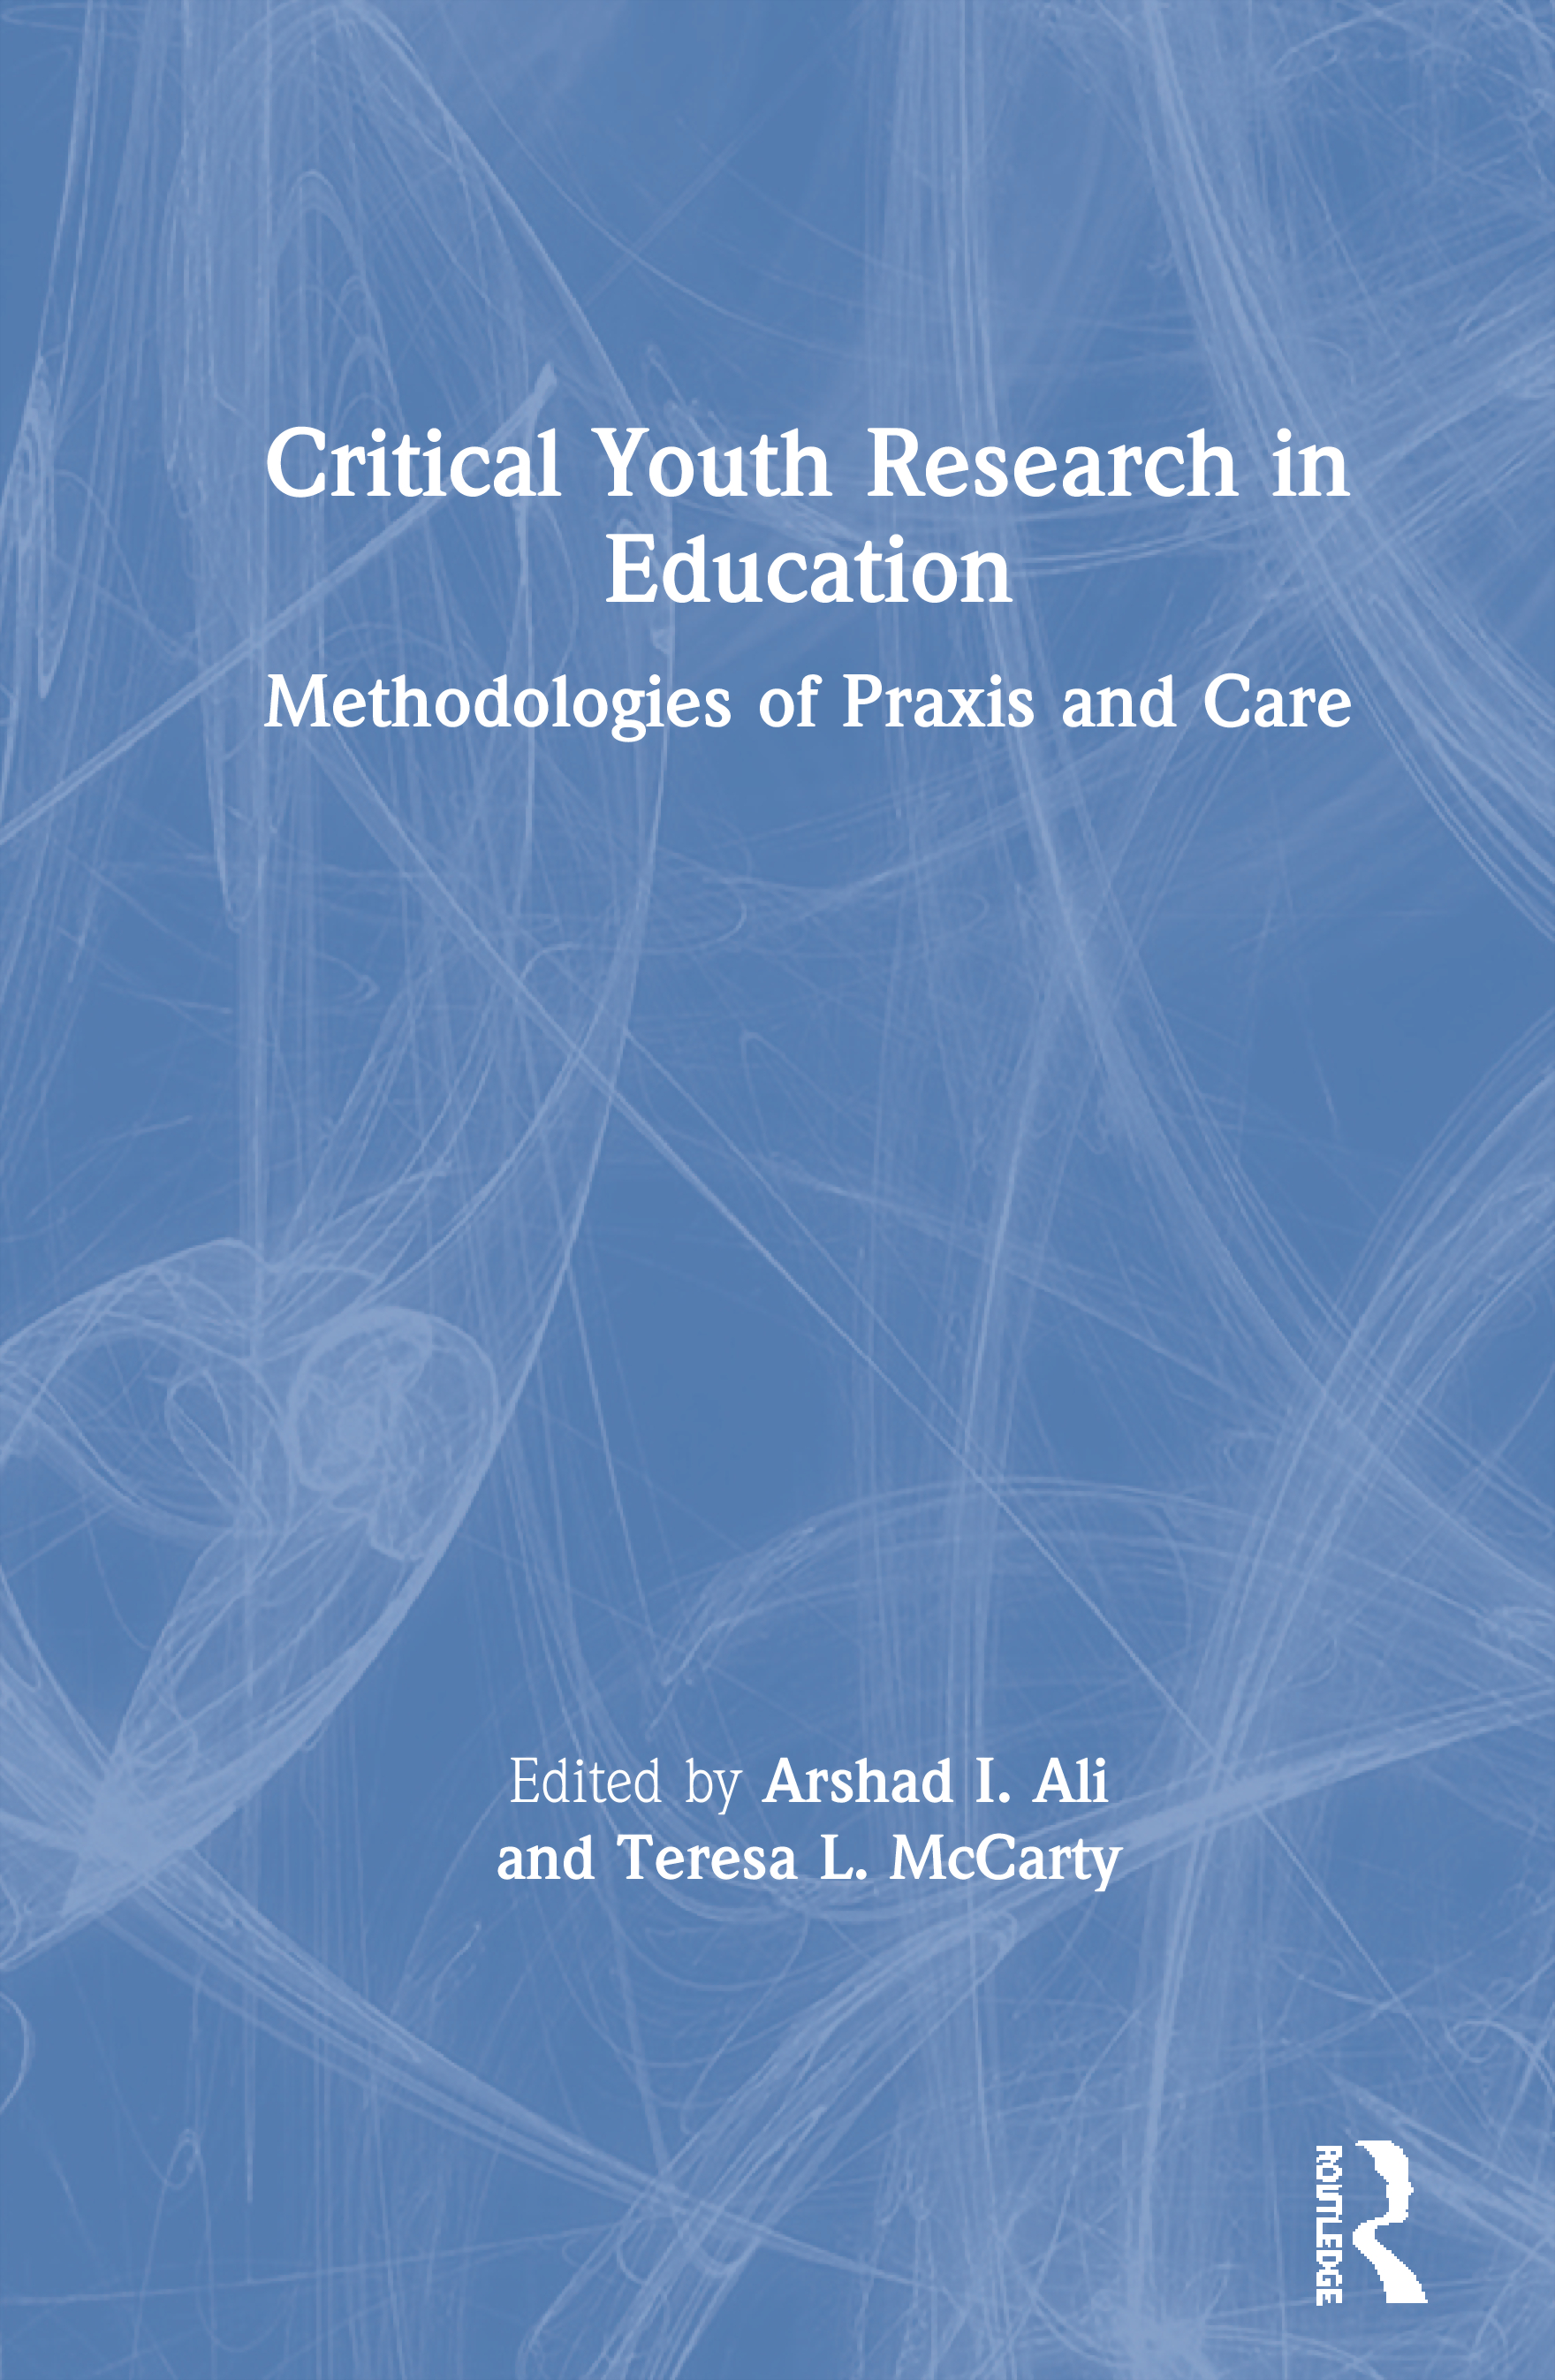 Critical Youth Research in Education: Methodologies of Praxis and Care book cover